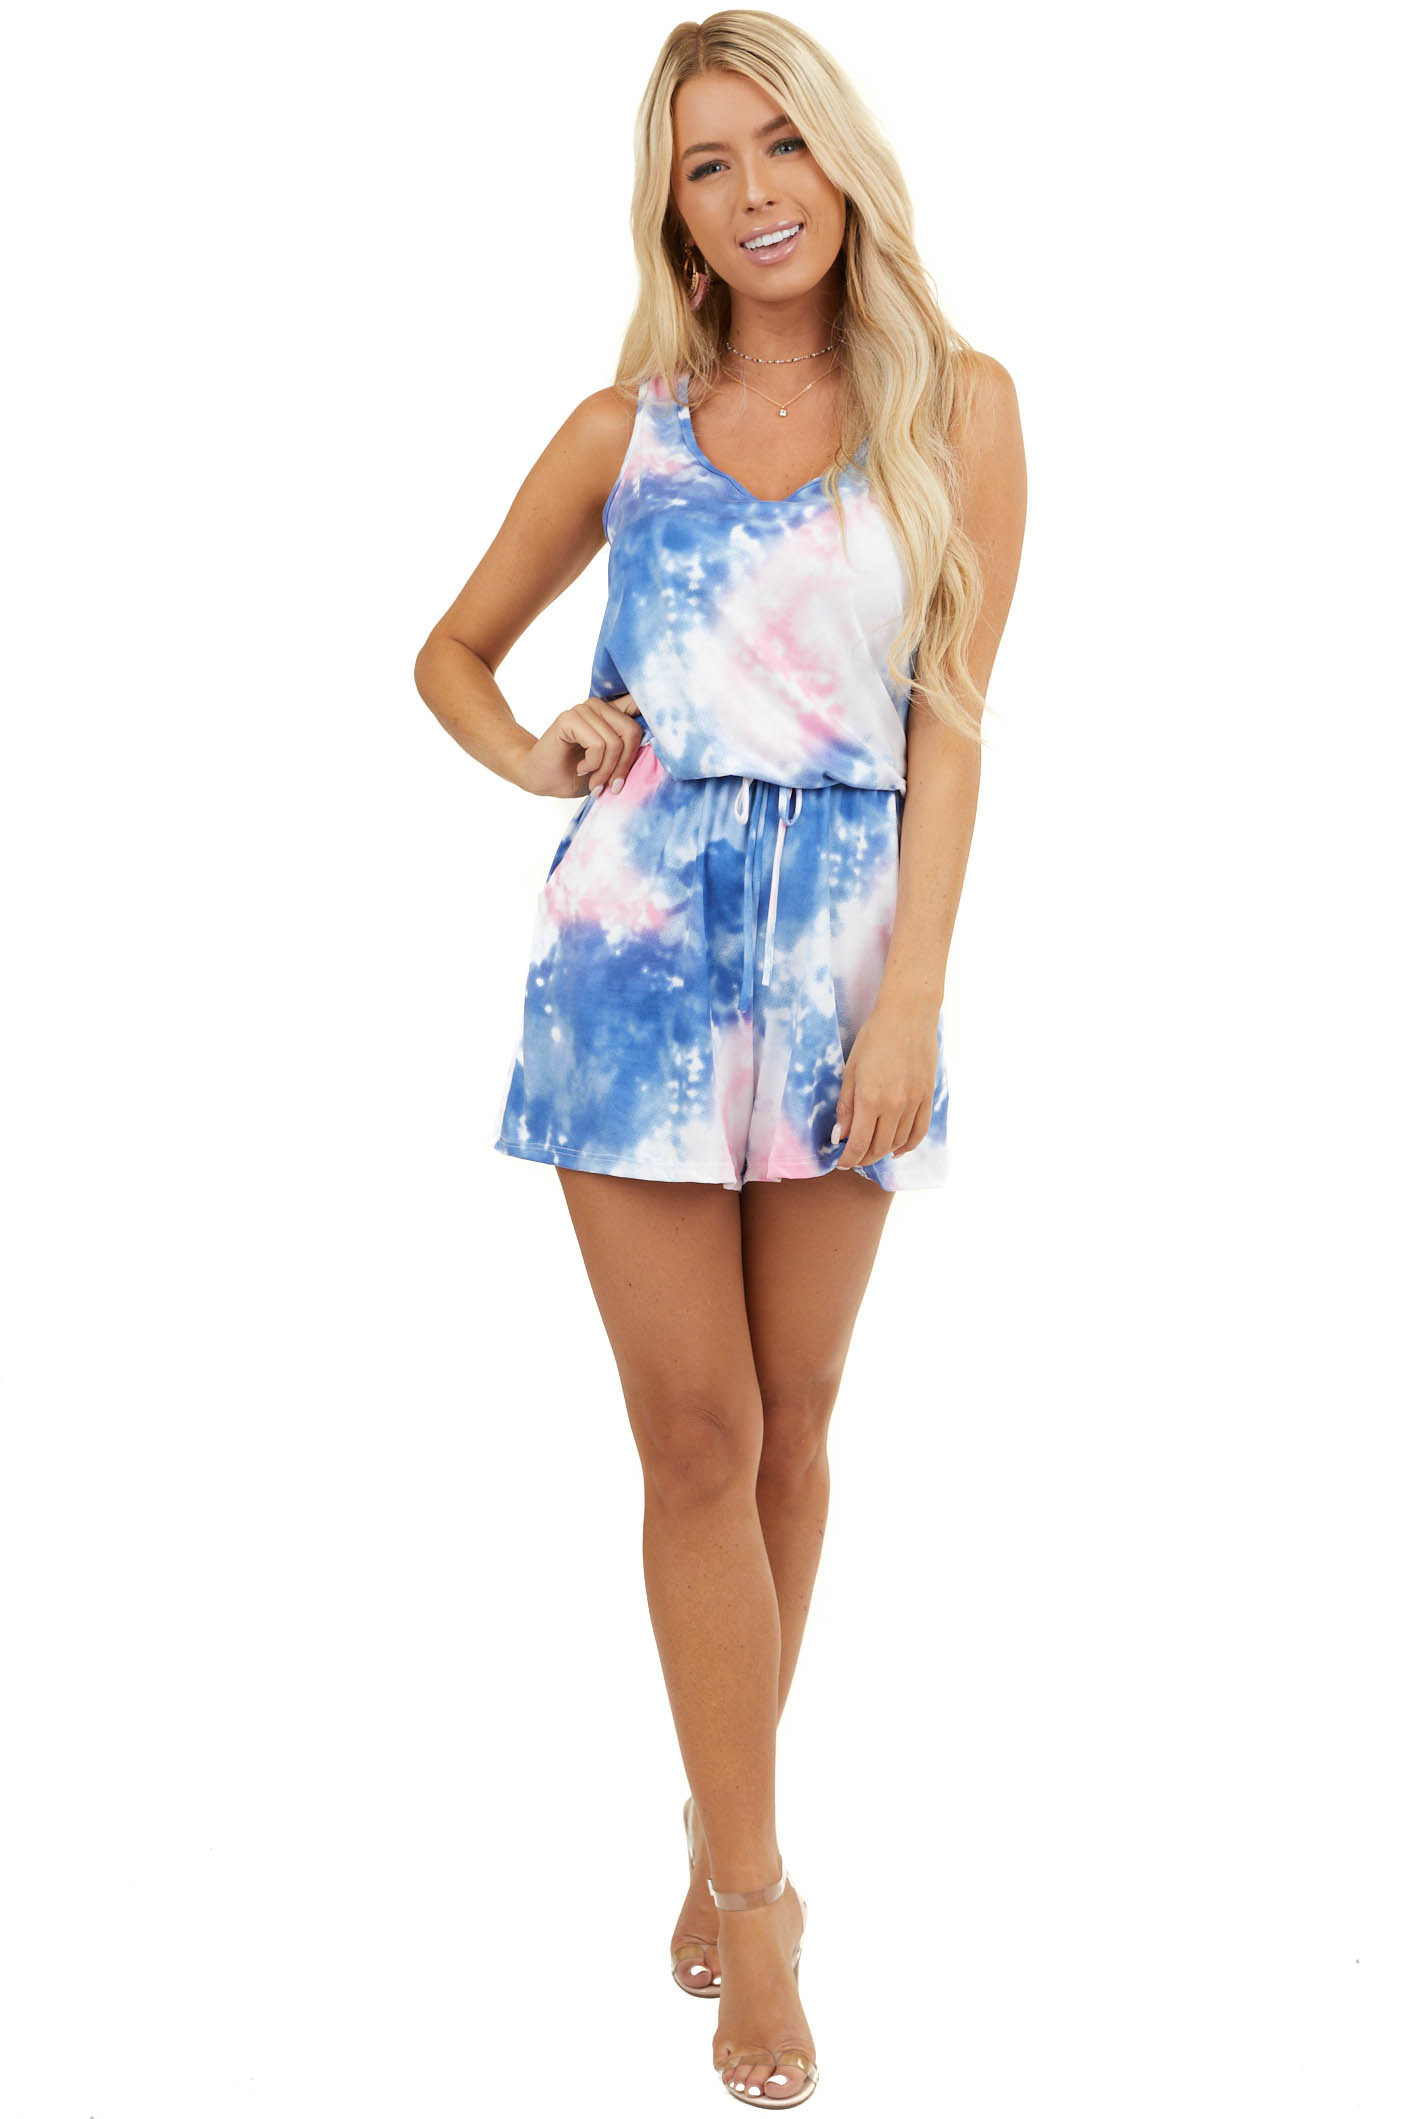 Blue Tie Dye Super Soft Sleeveless Romper with Pockets